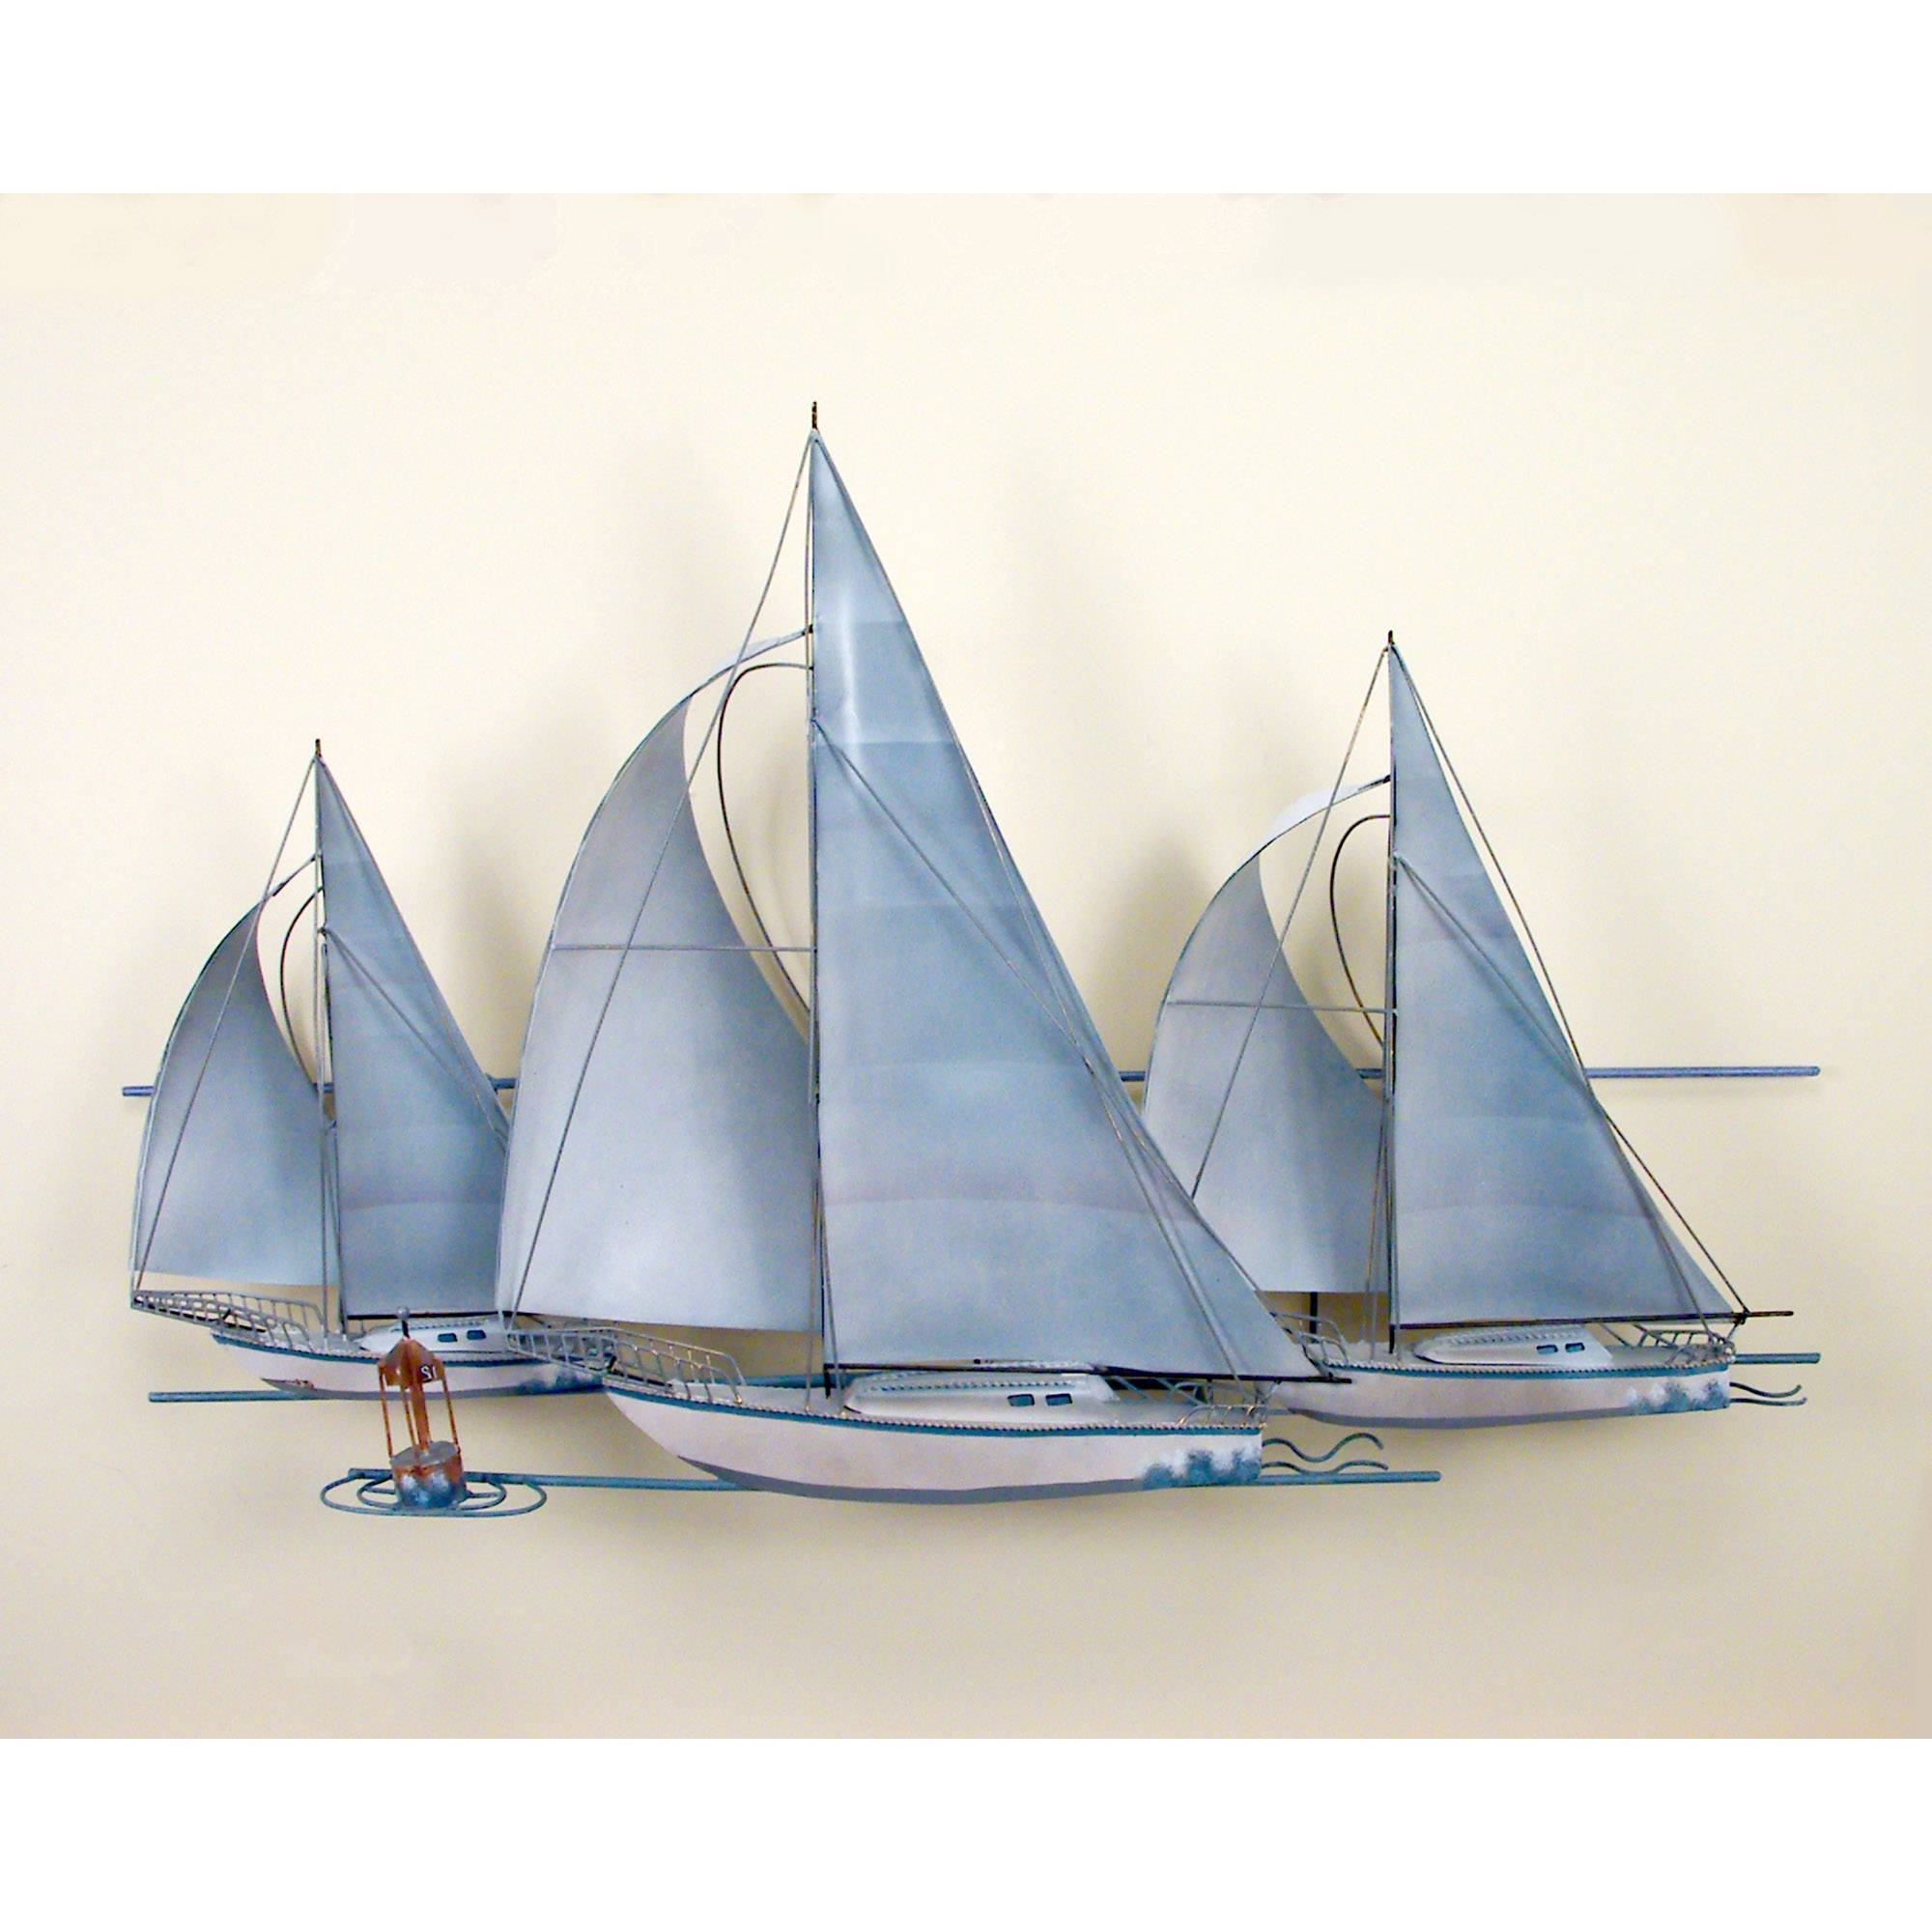 Best And Newest At The Races,three Sail Boats, Race, Wall Art, Wall Hanging Inside Sailboat Metal Wall Art (View 4 of 15)